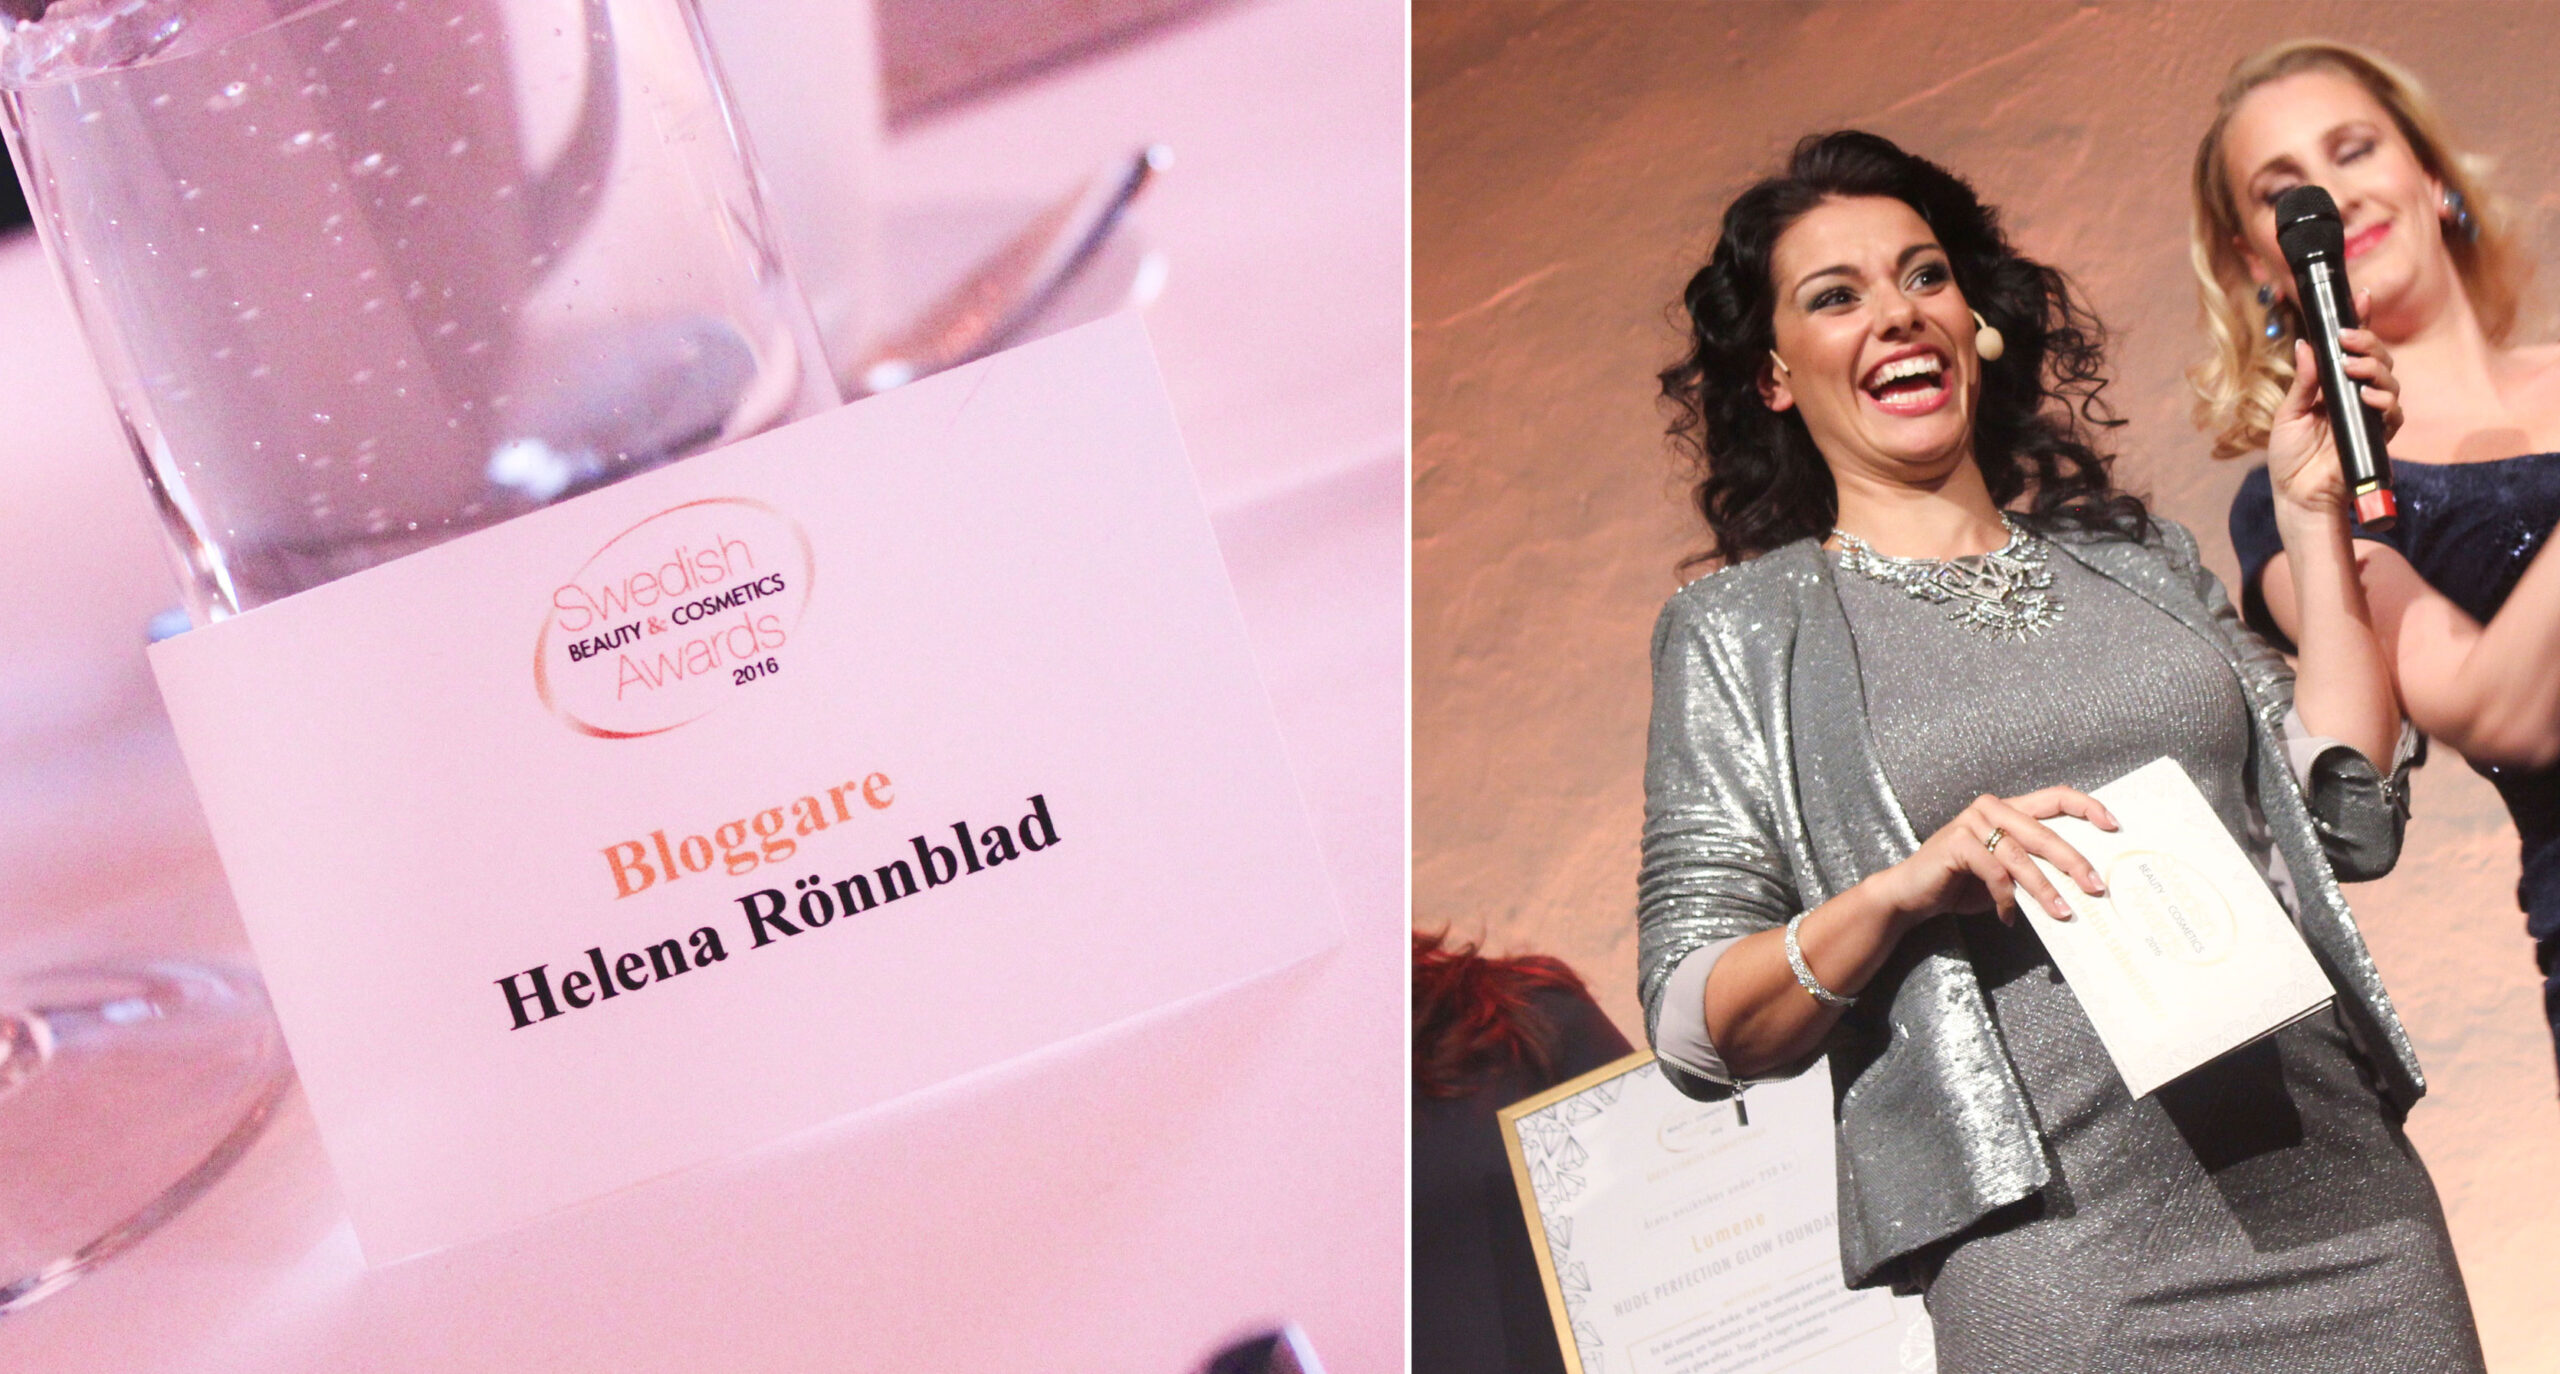 swedish-beauty-&-cosmetics-awards